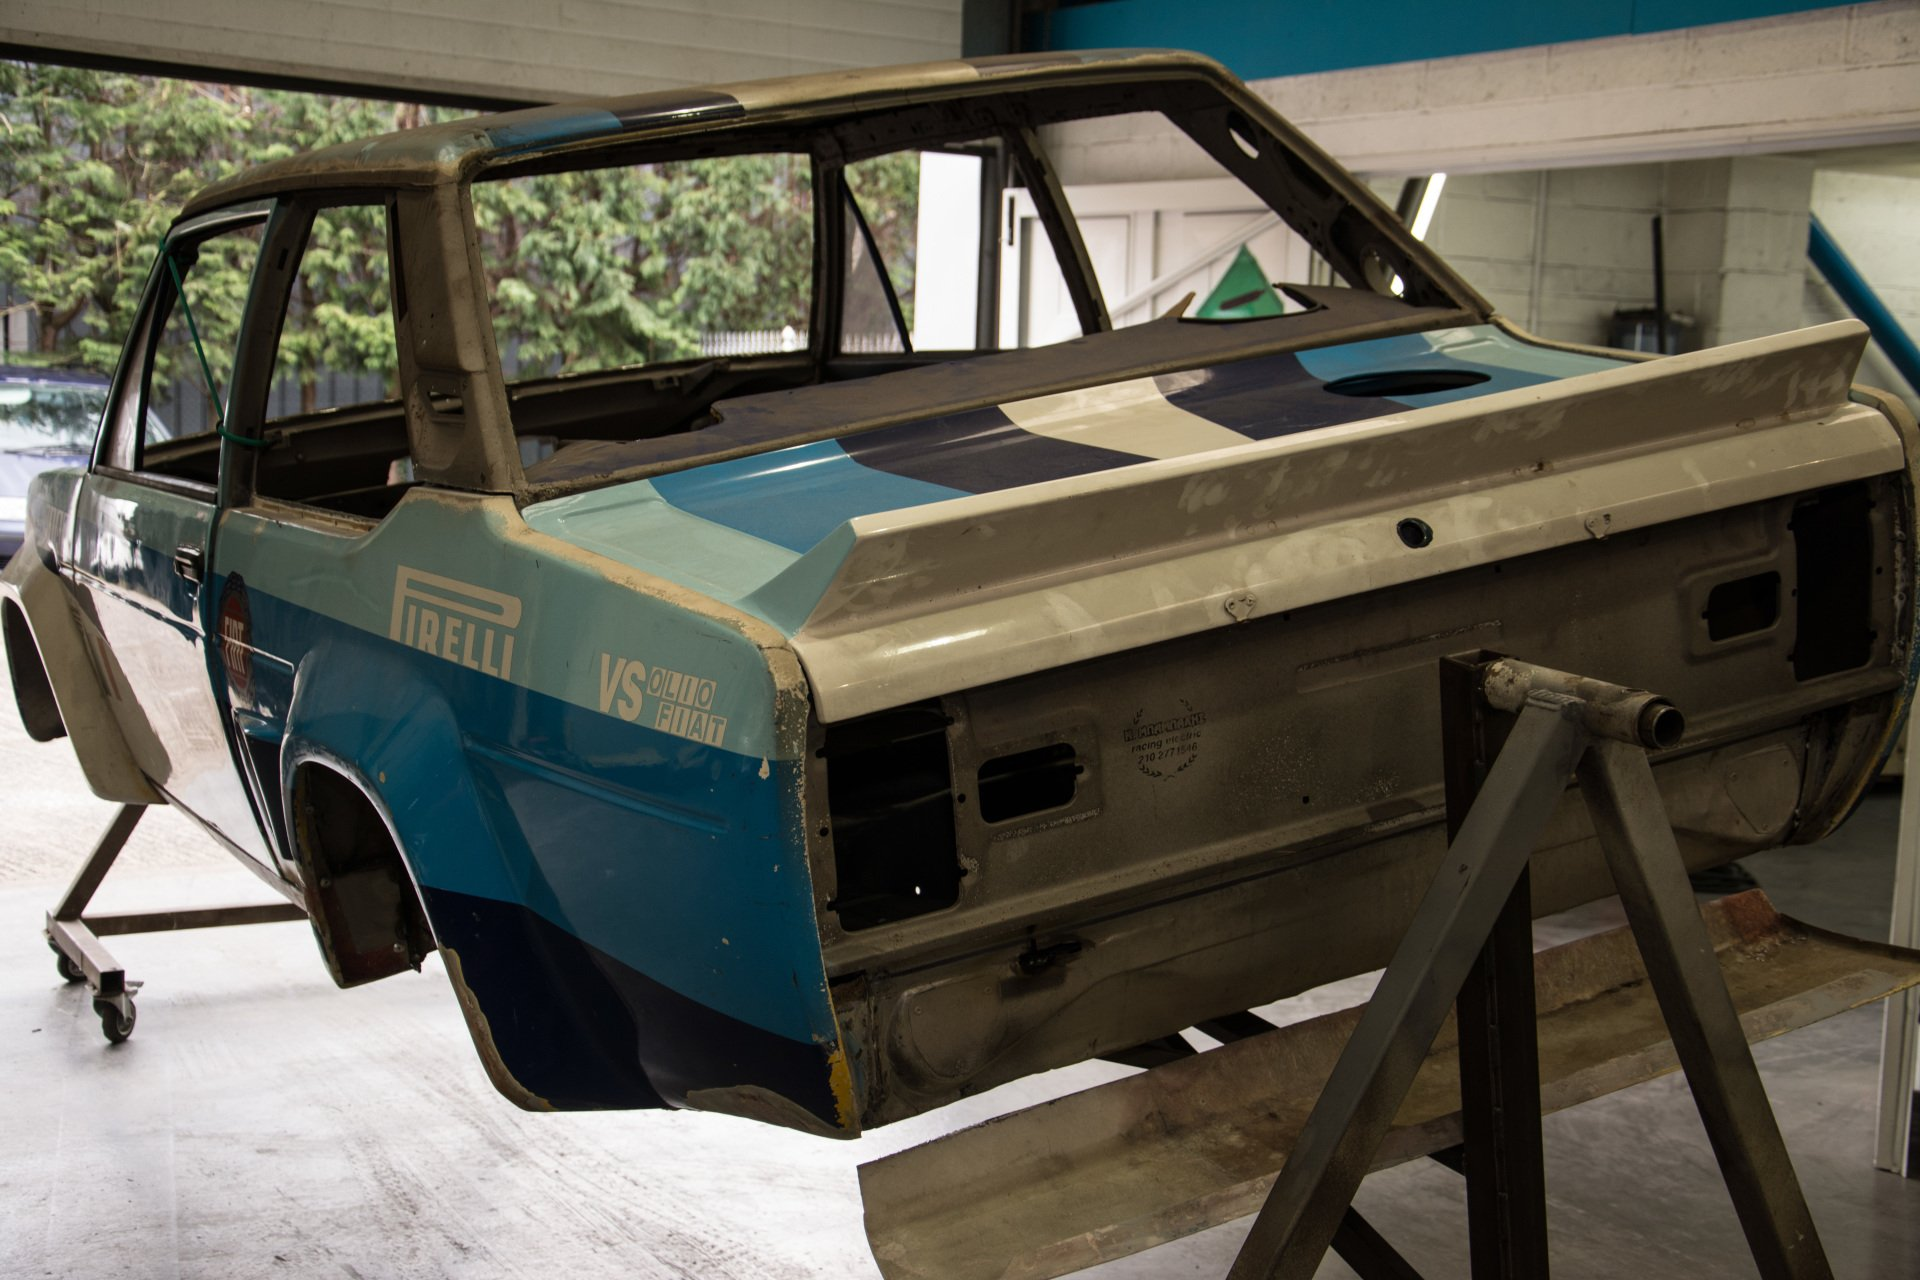 fiat-131-abarth-grp-4-rally-car-07